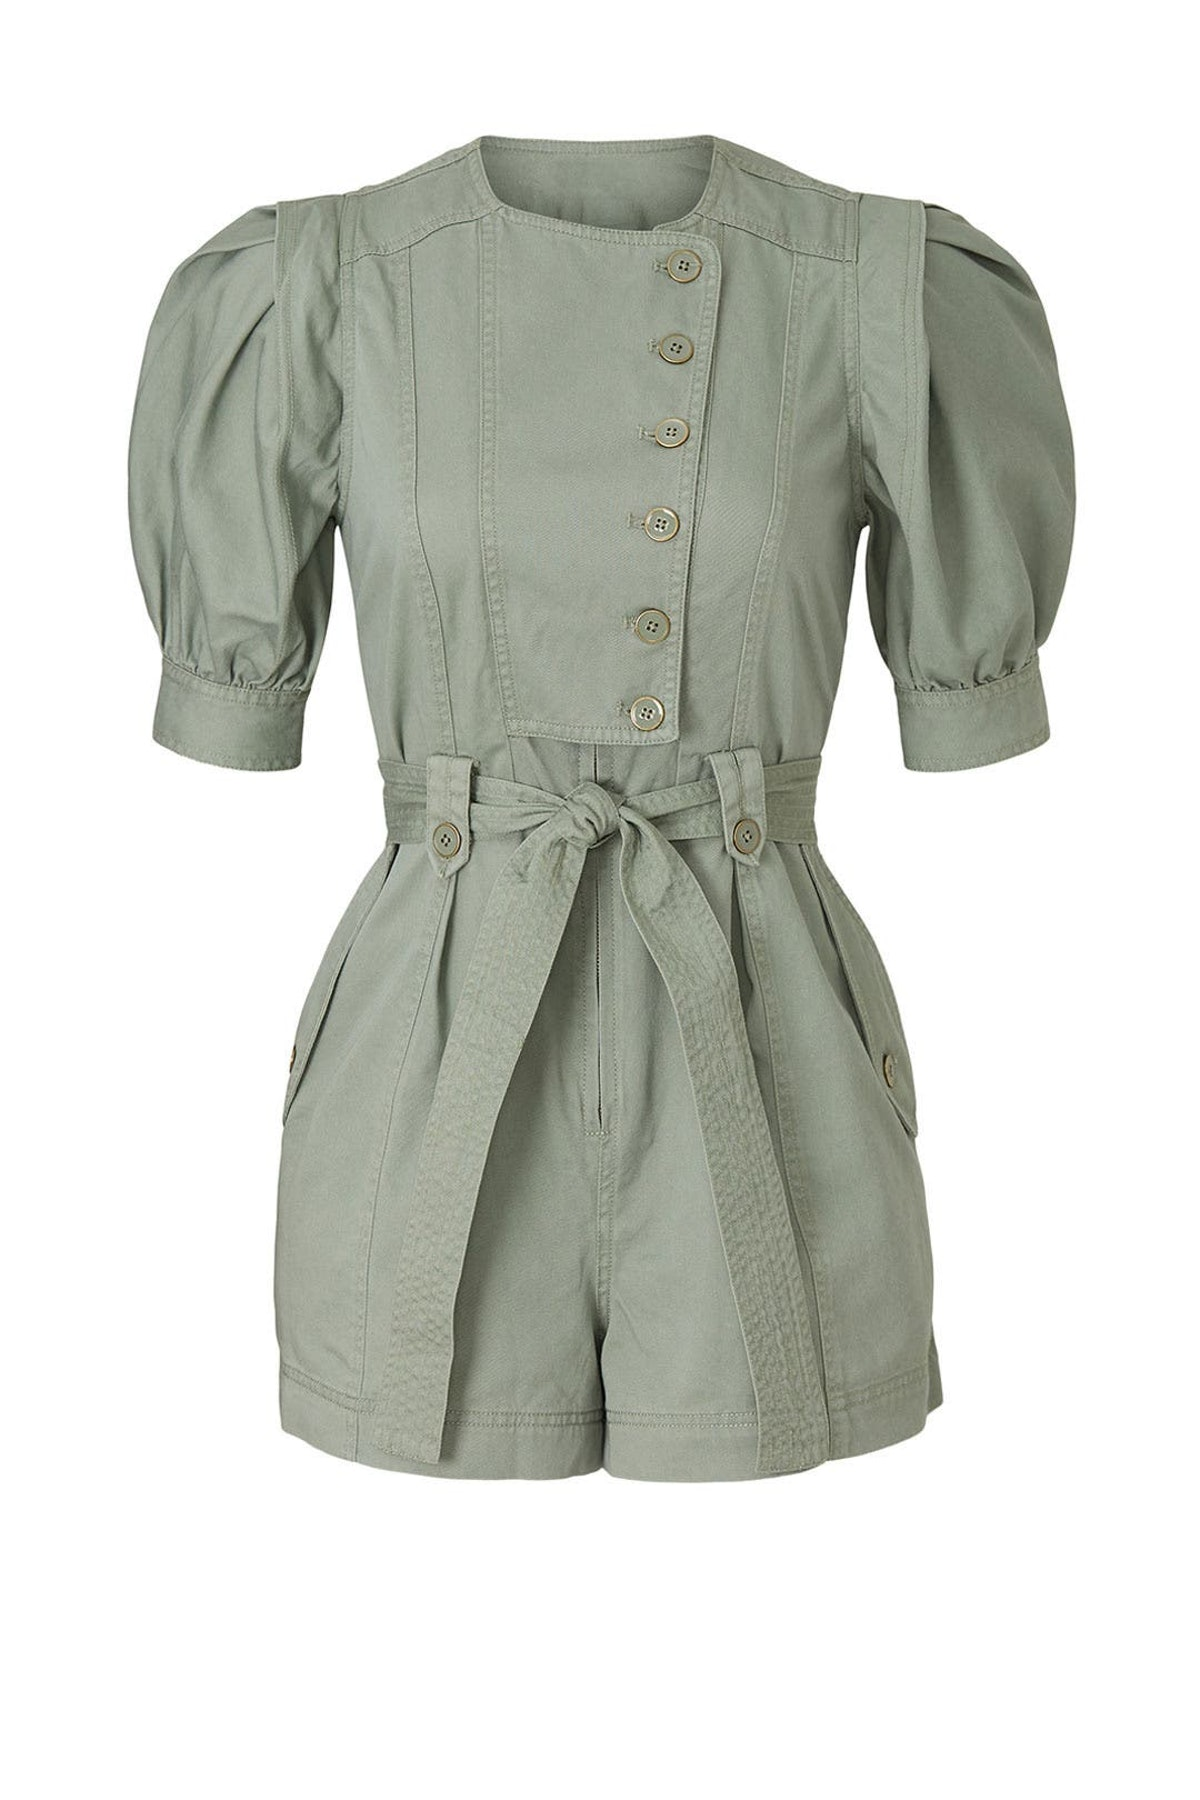 Carmine romper from Ulla Johnson, available to shop or rent via Rent The Runway.